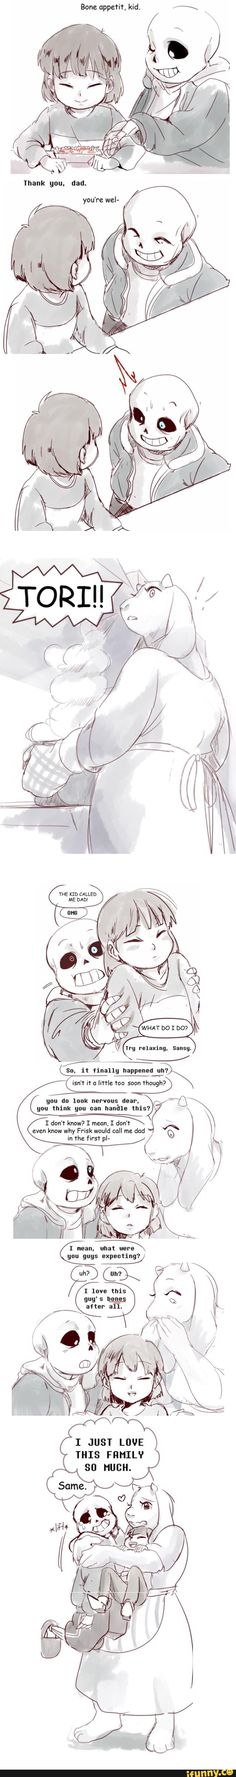 I don't normally ship Soriel but this was cute